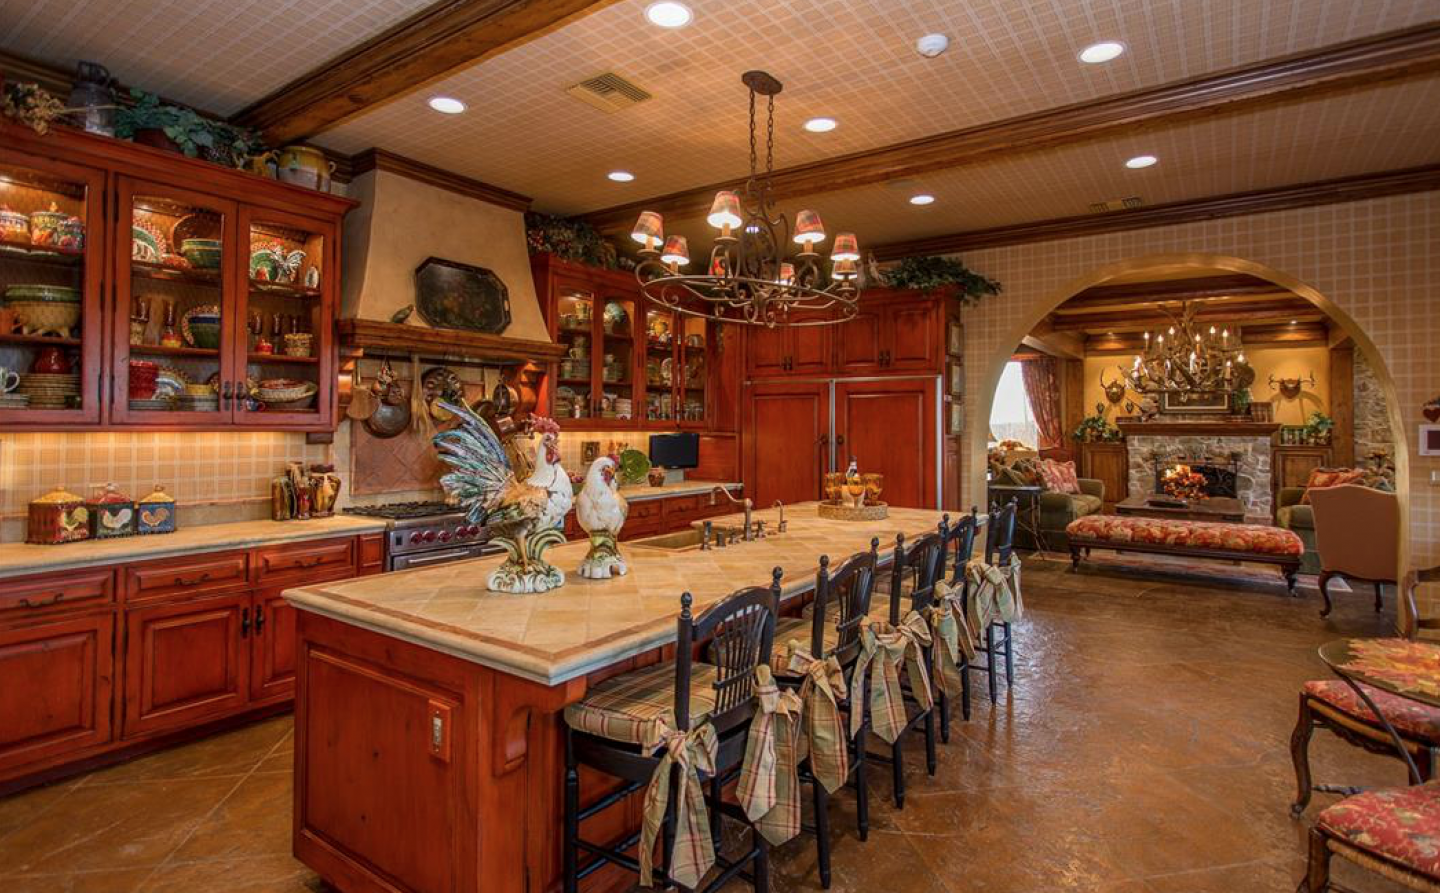 The Tuscan kitchen with custom cabinetry